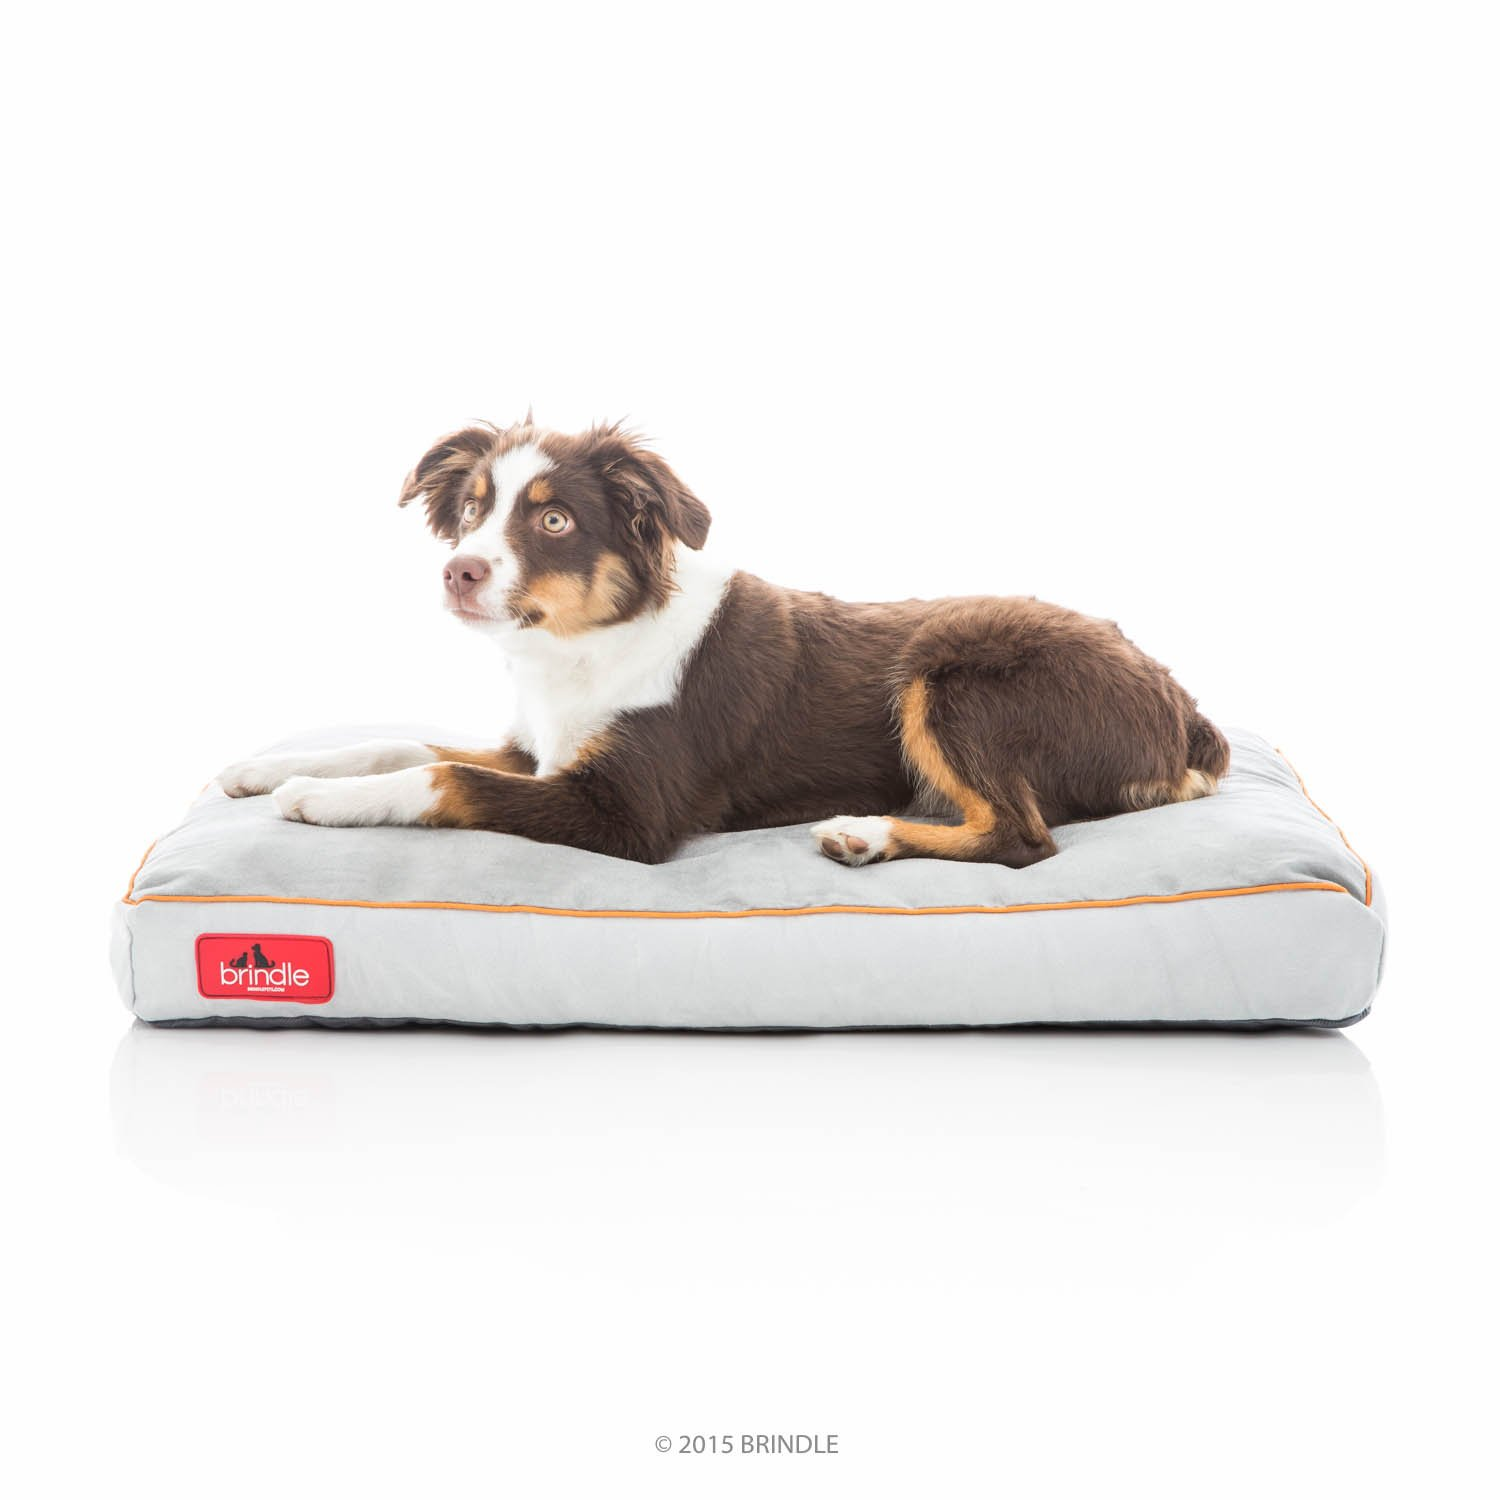 Brindle Soft Shredded Memory Foam Dog Bed with Removable Washable Cover - 28in x 18in - Stone